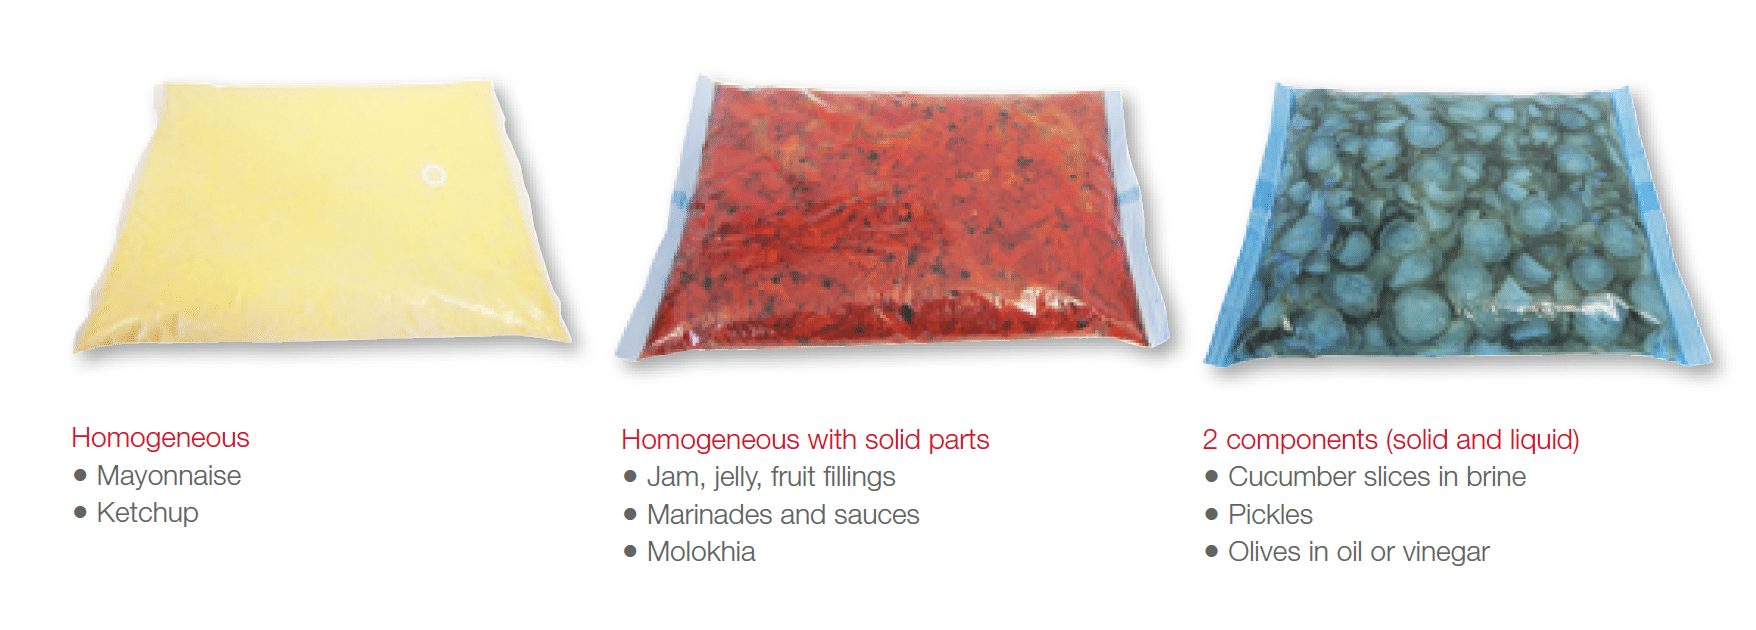 different-types-or-foodservice-liquid-and-pumpable-products-in-flexible-packaging